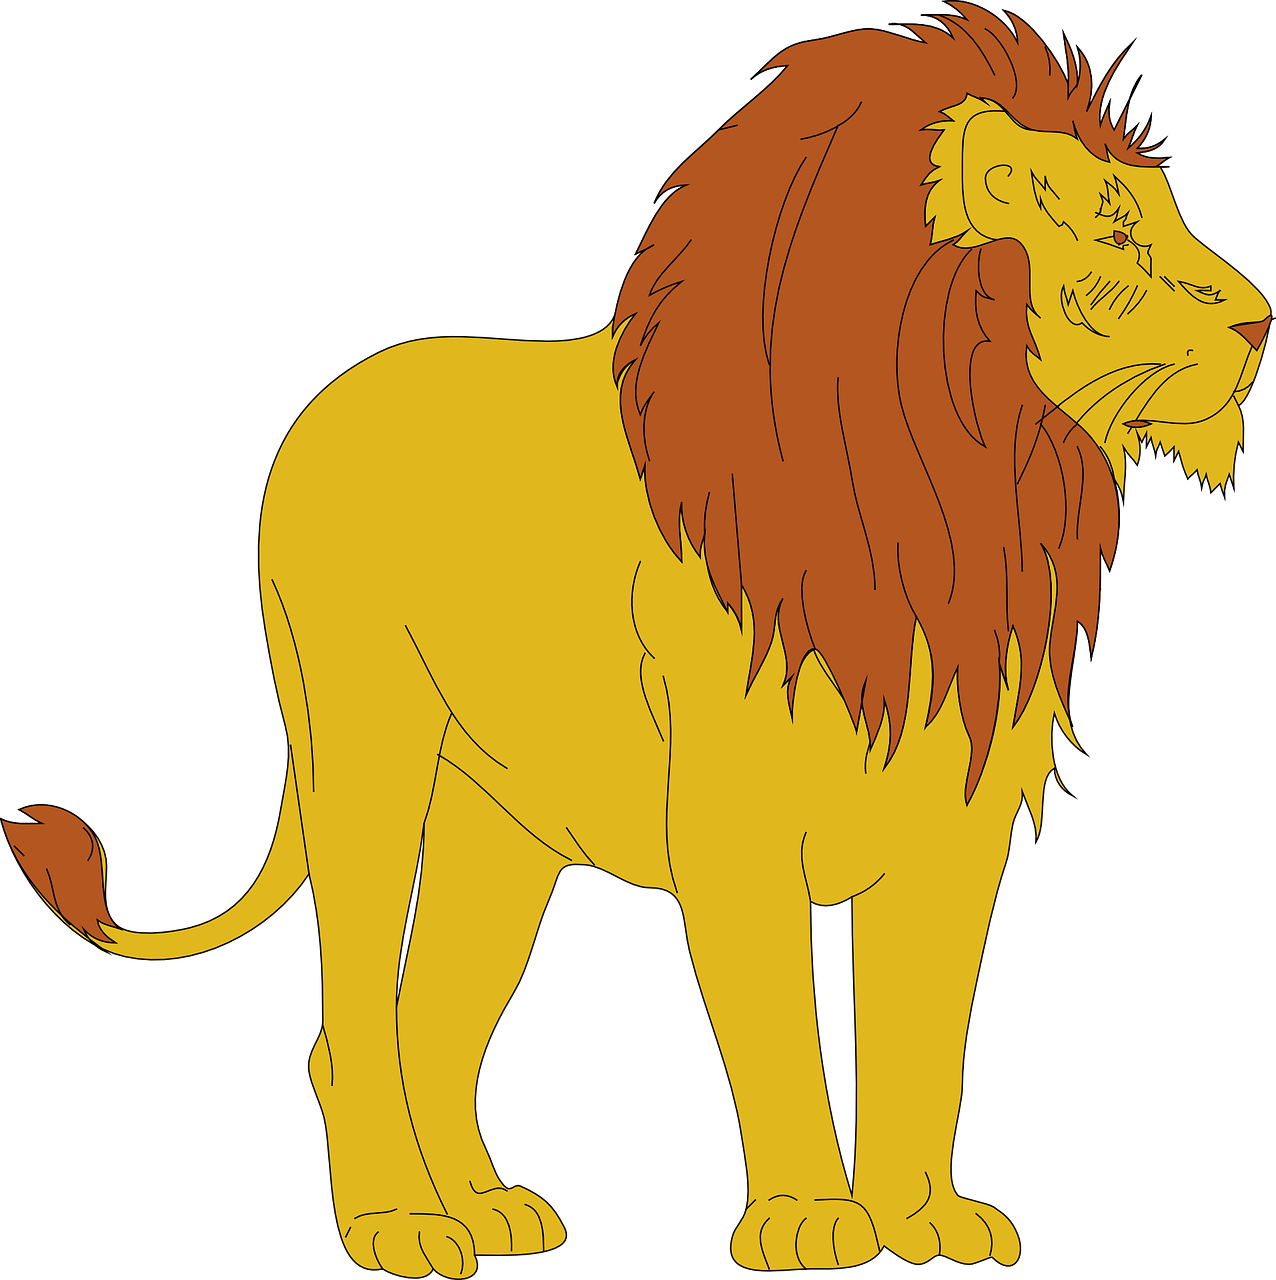 lion,animal,mammal,standing,looking,away,wildlife,dangerous,predator,kingjungle,forest,strong,powerful,free vector graphics,free pictures, free photos, free images, royalty free, free illustrations, public domain